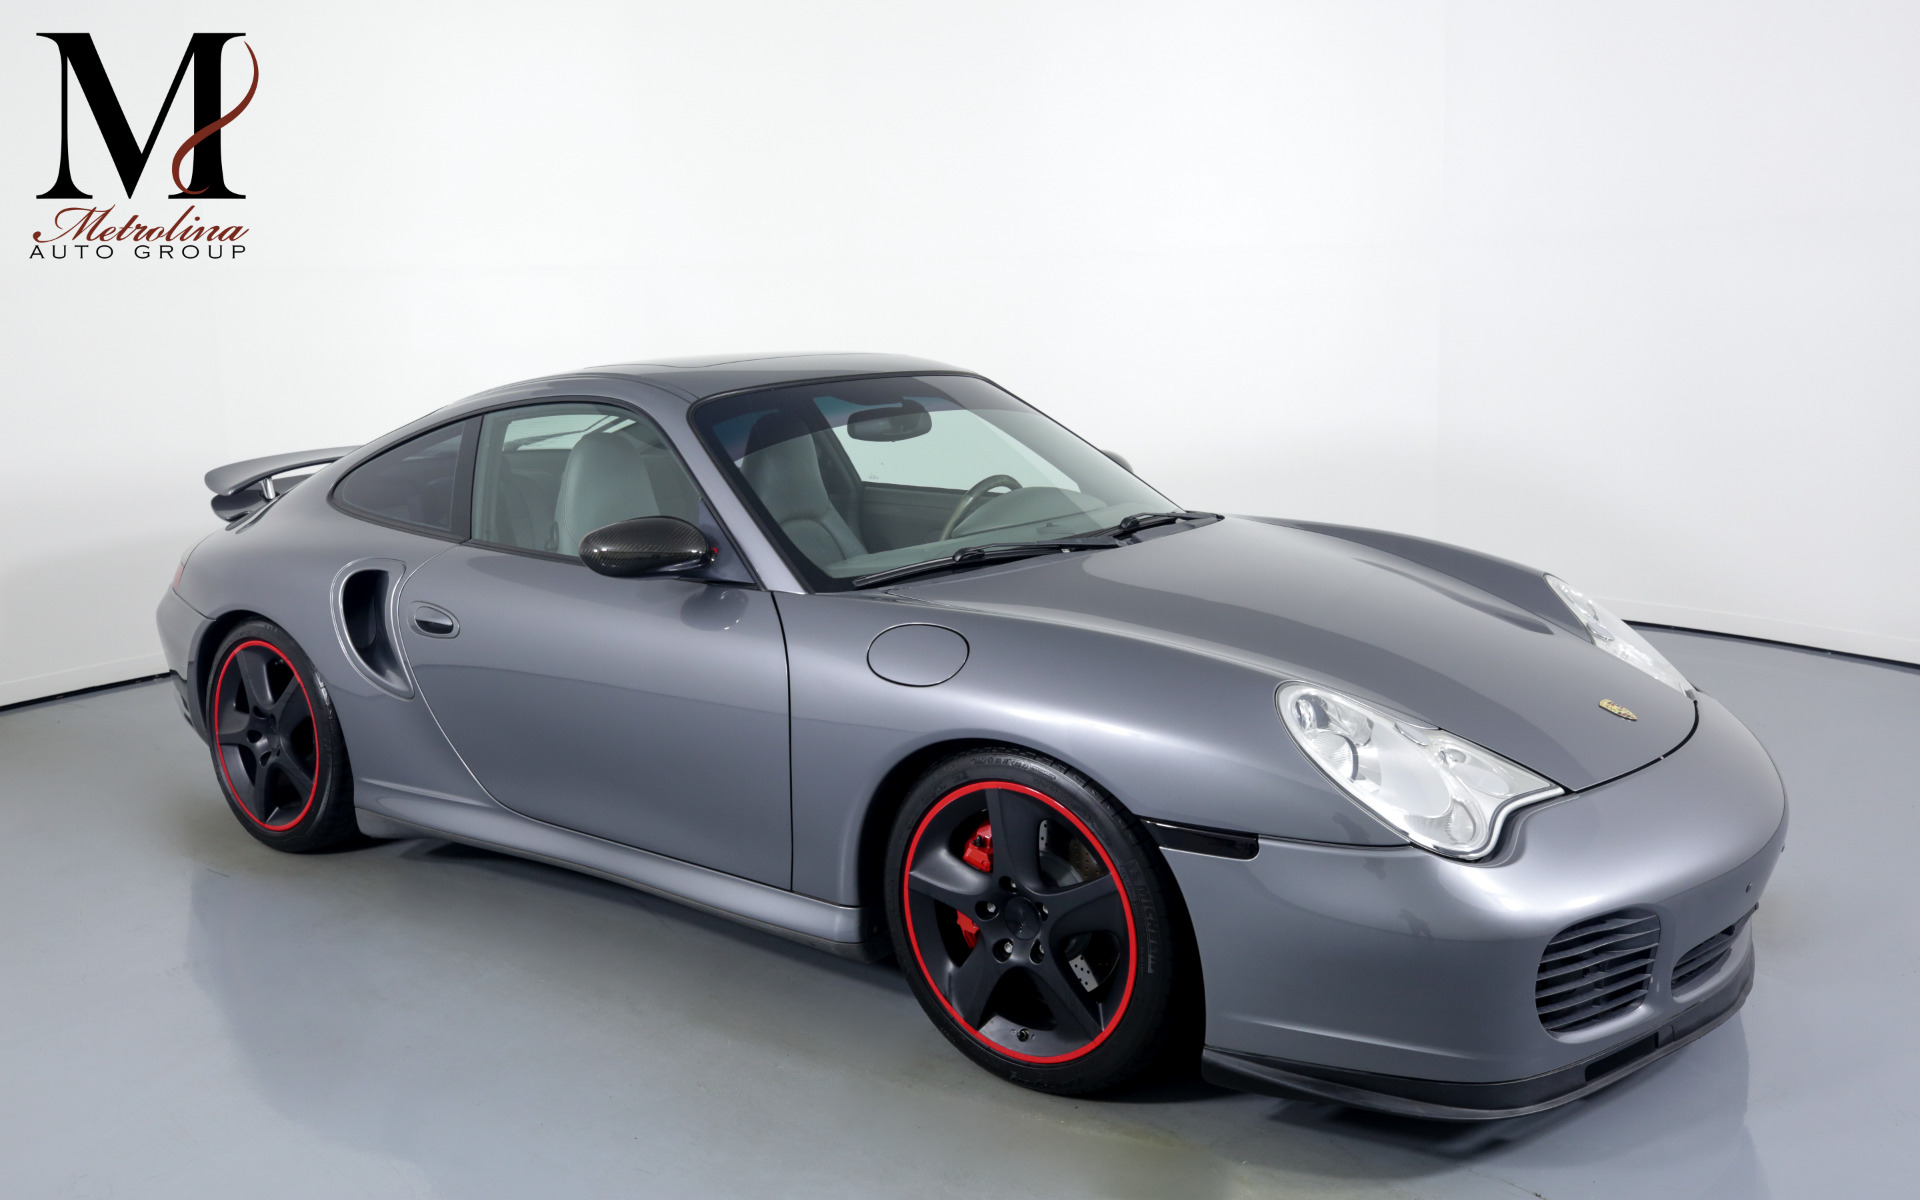 Used 2003 Porsche 911 Turbo for sale $49,996 at Metrolina Auto Group in Charlotte NC 28217 - 1